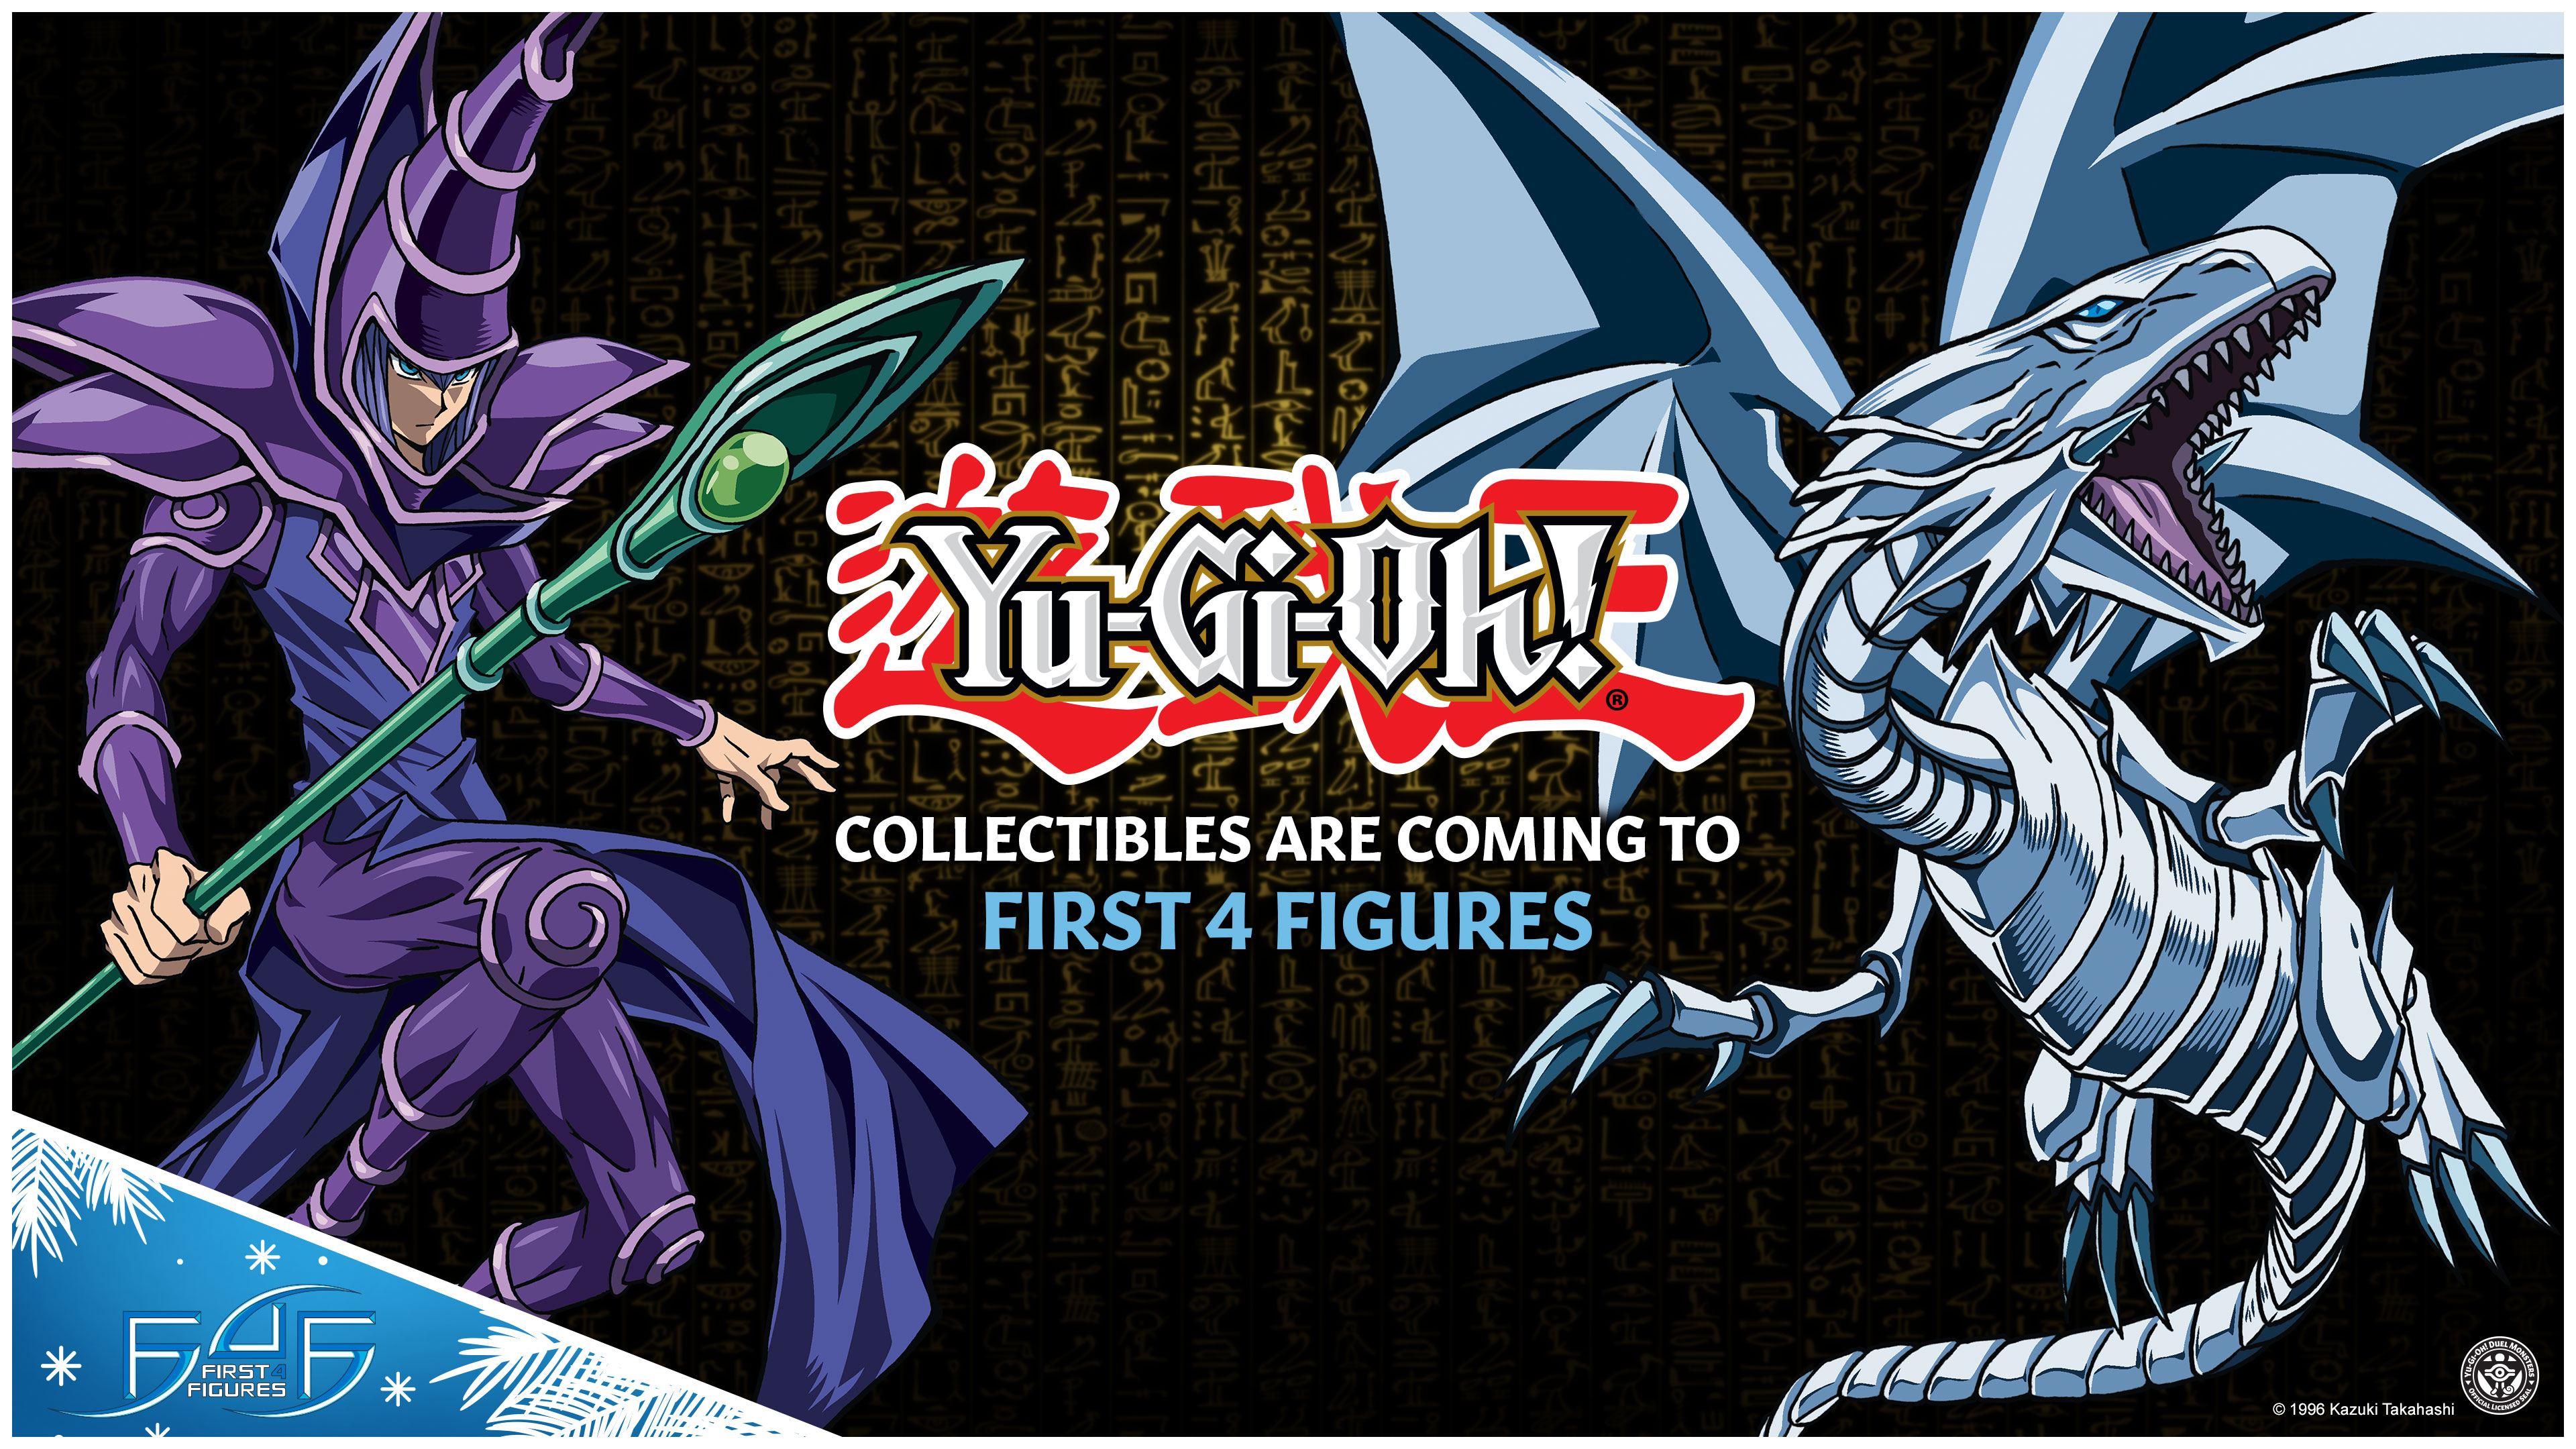 Yu-Gi-Oh! collectibles are coming to First 4 Figures